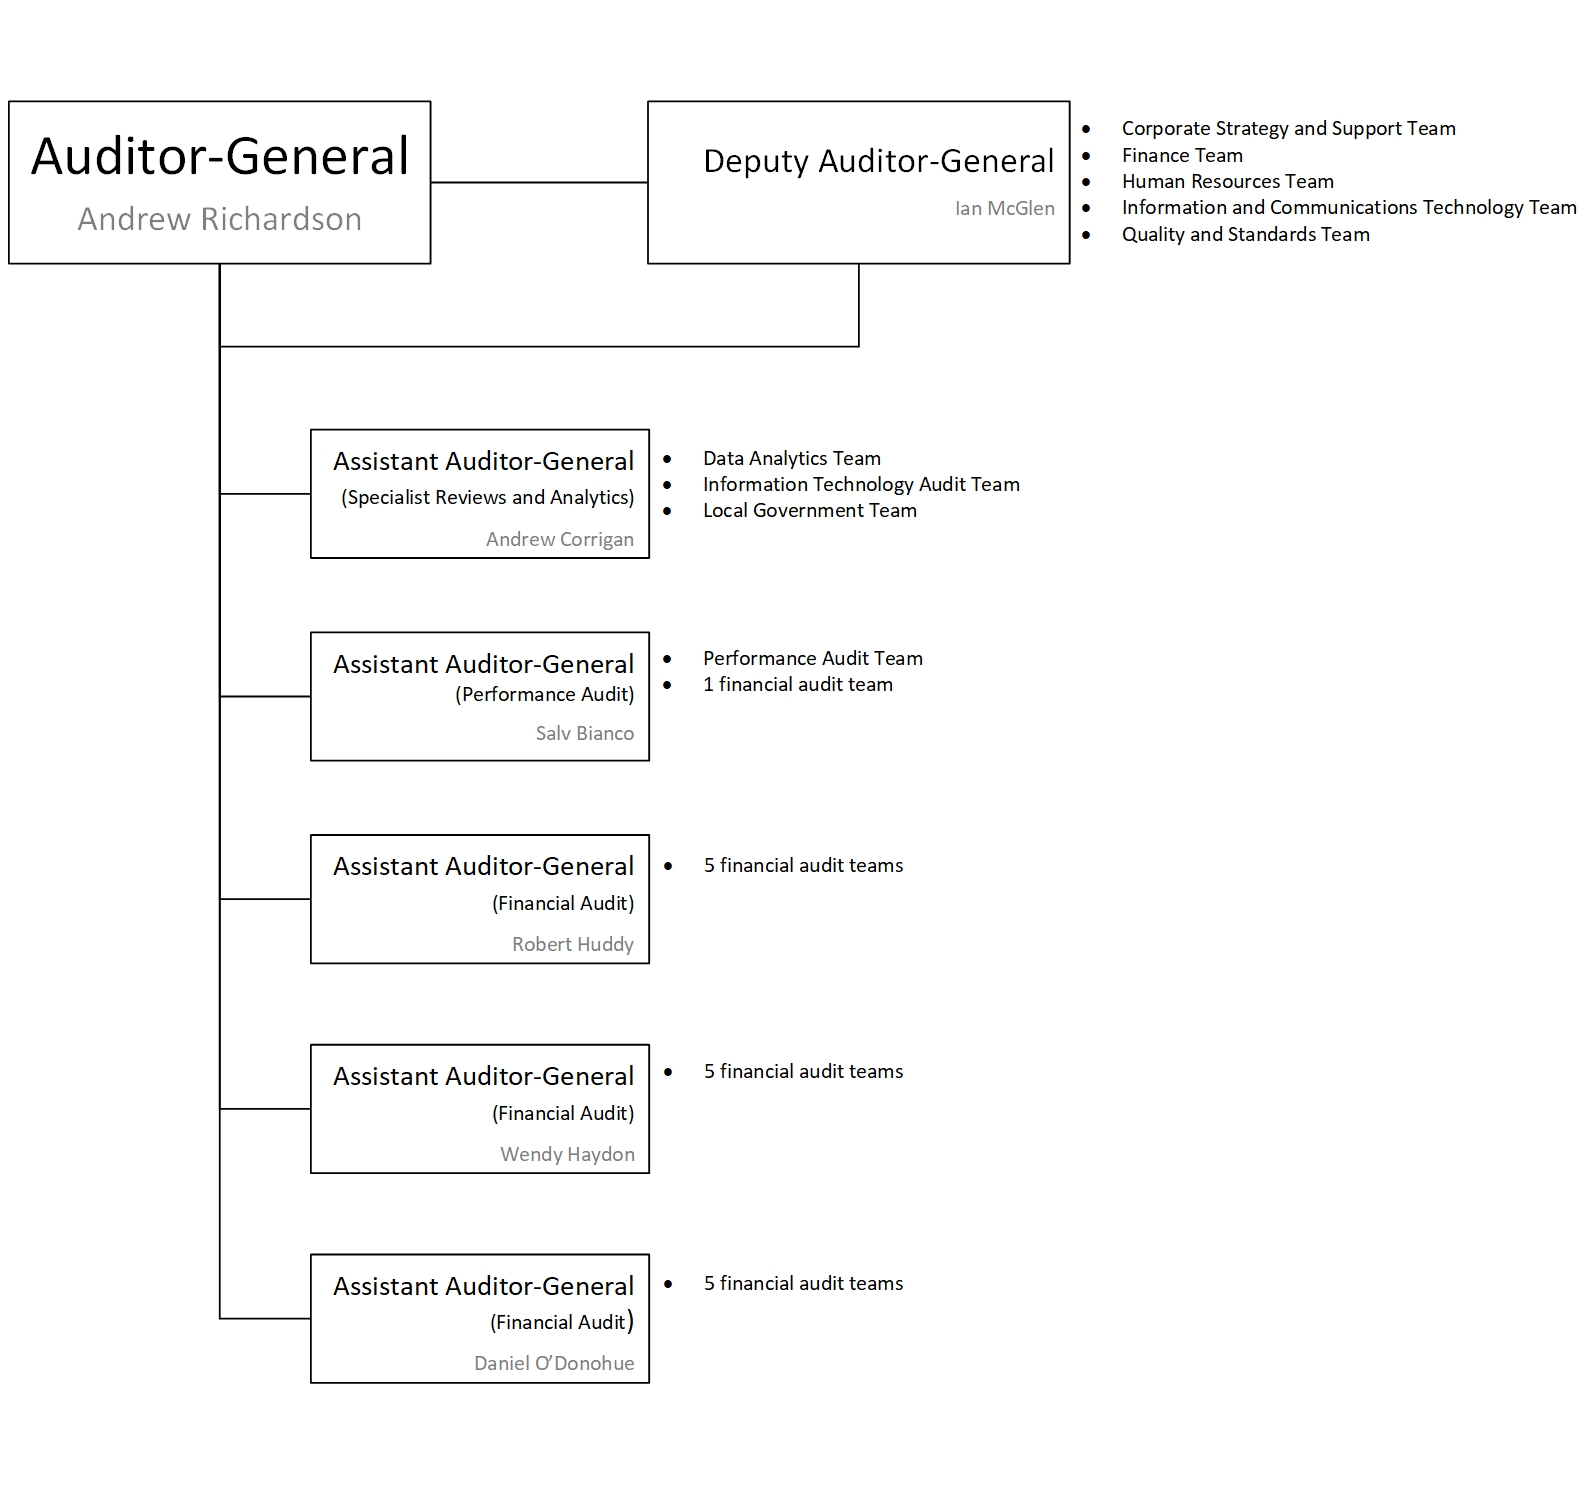 Auditor-General's Department South Australia, Organisation Chart